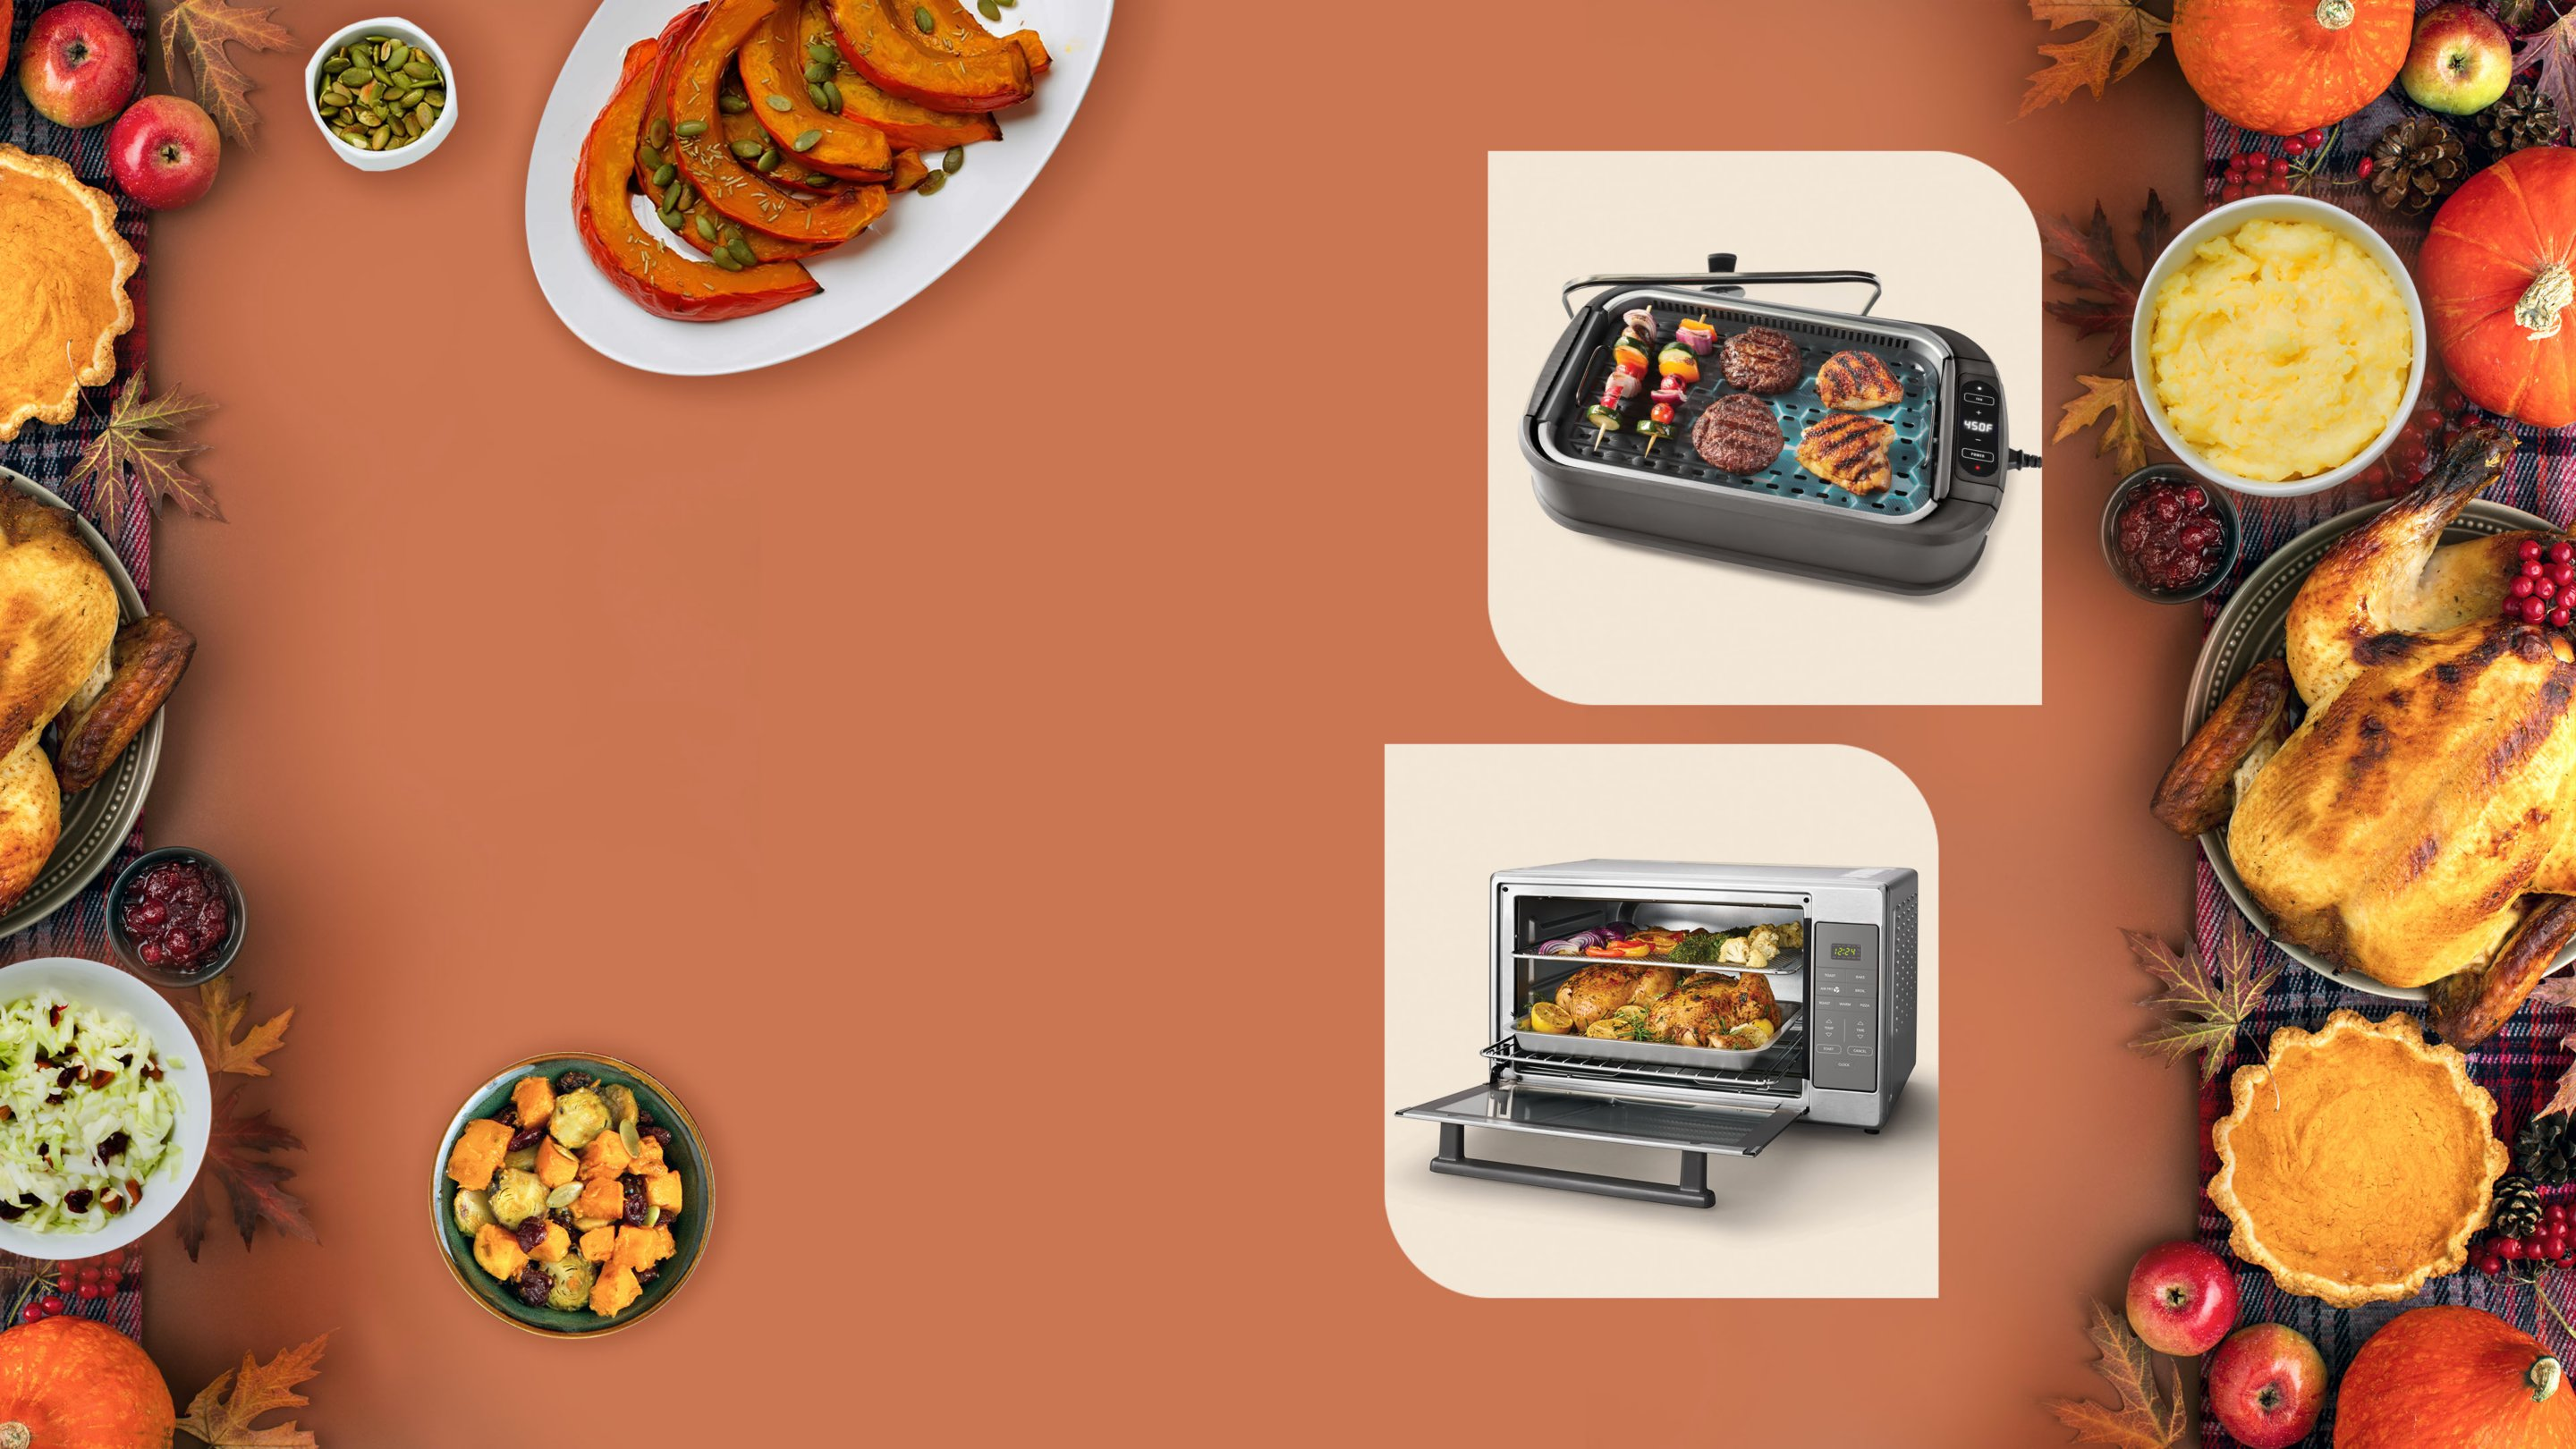 cooking appliances and food